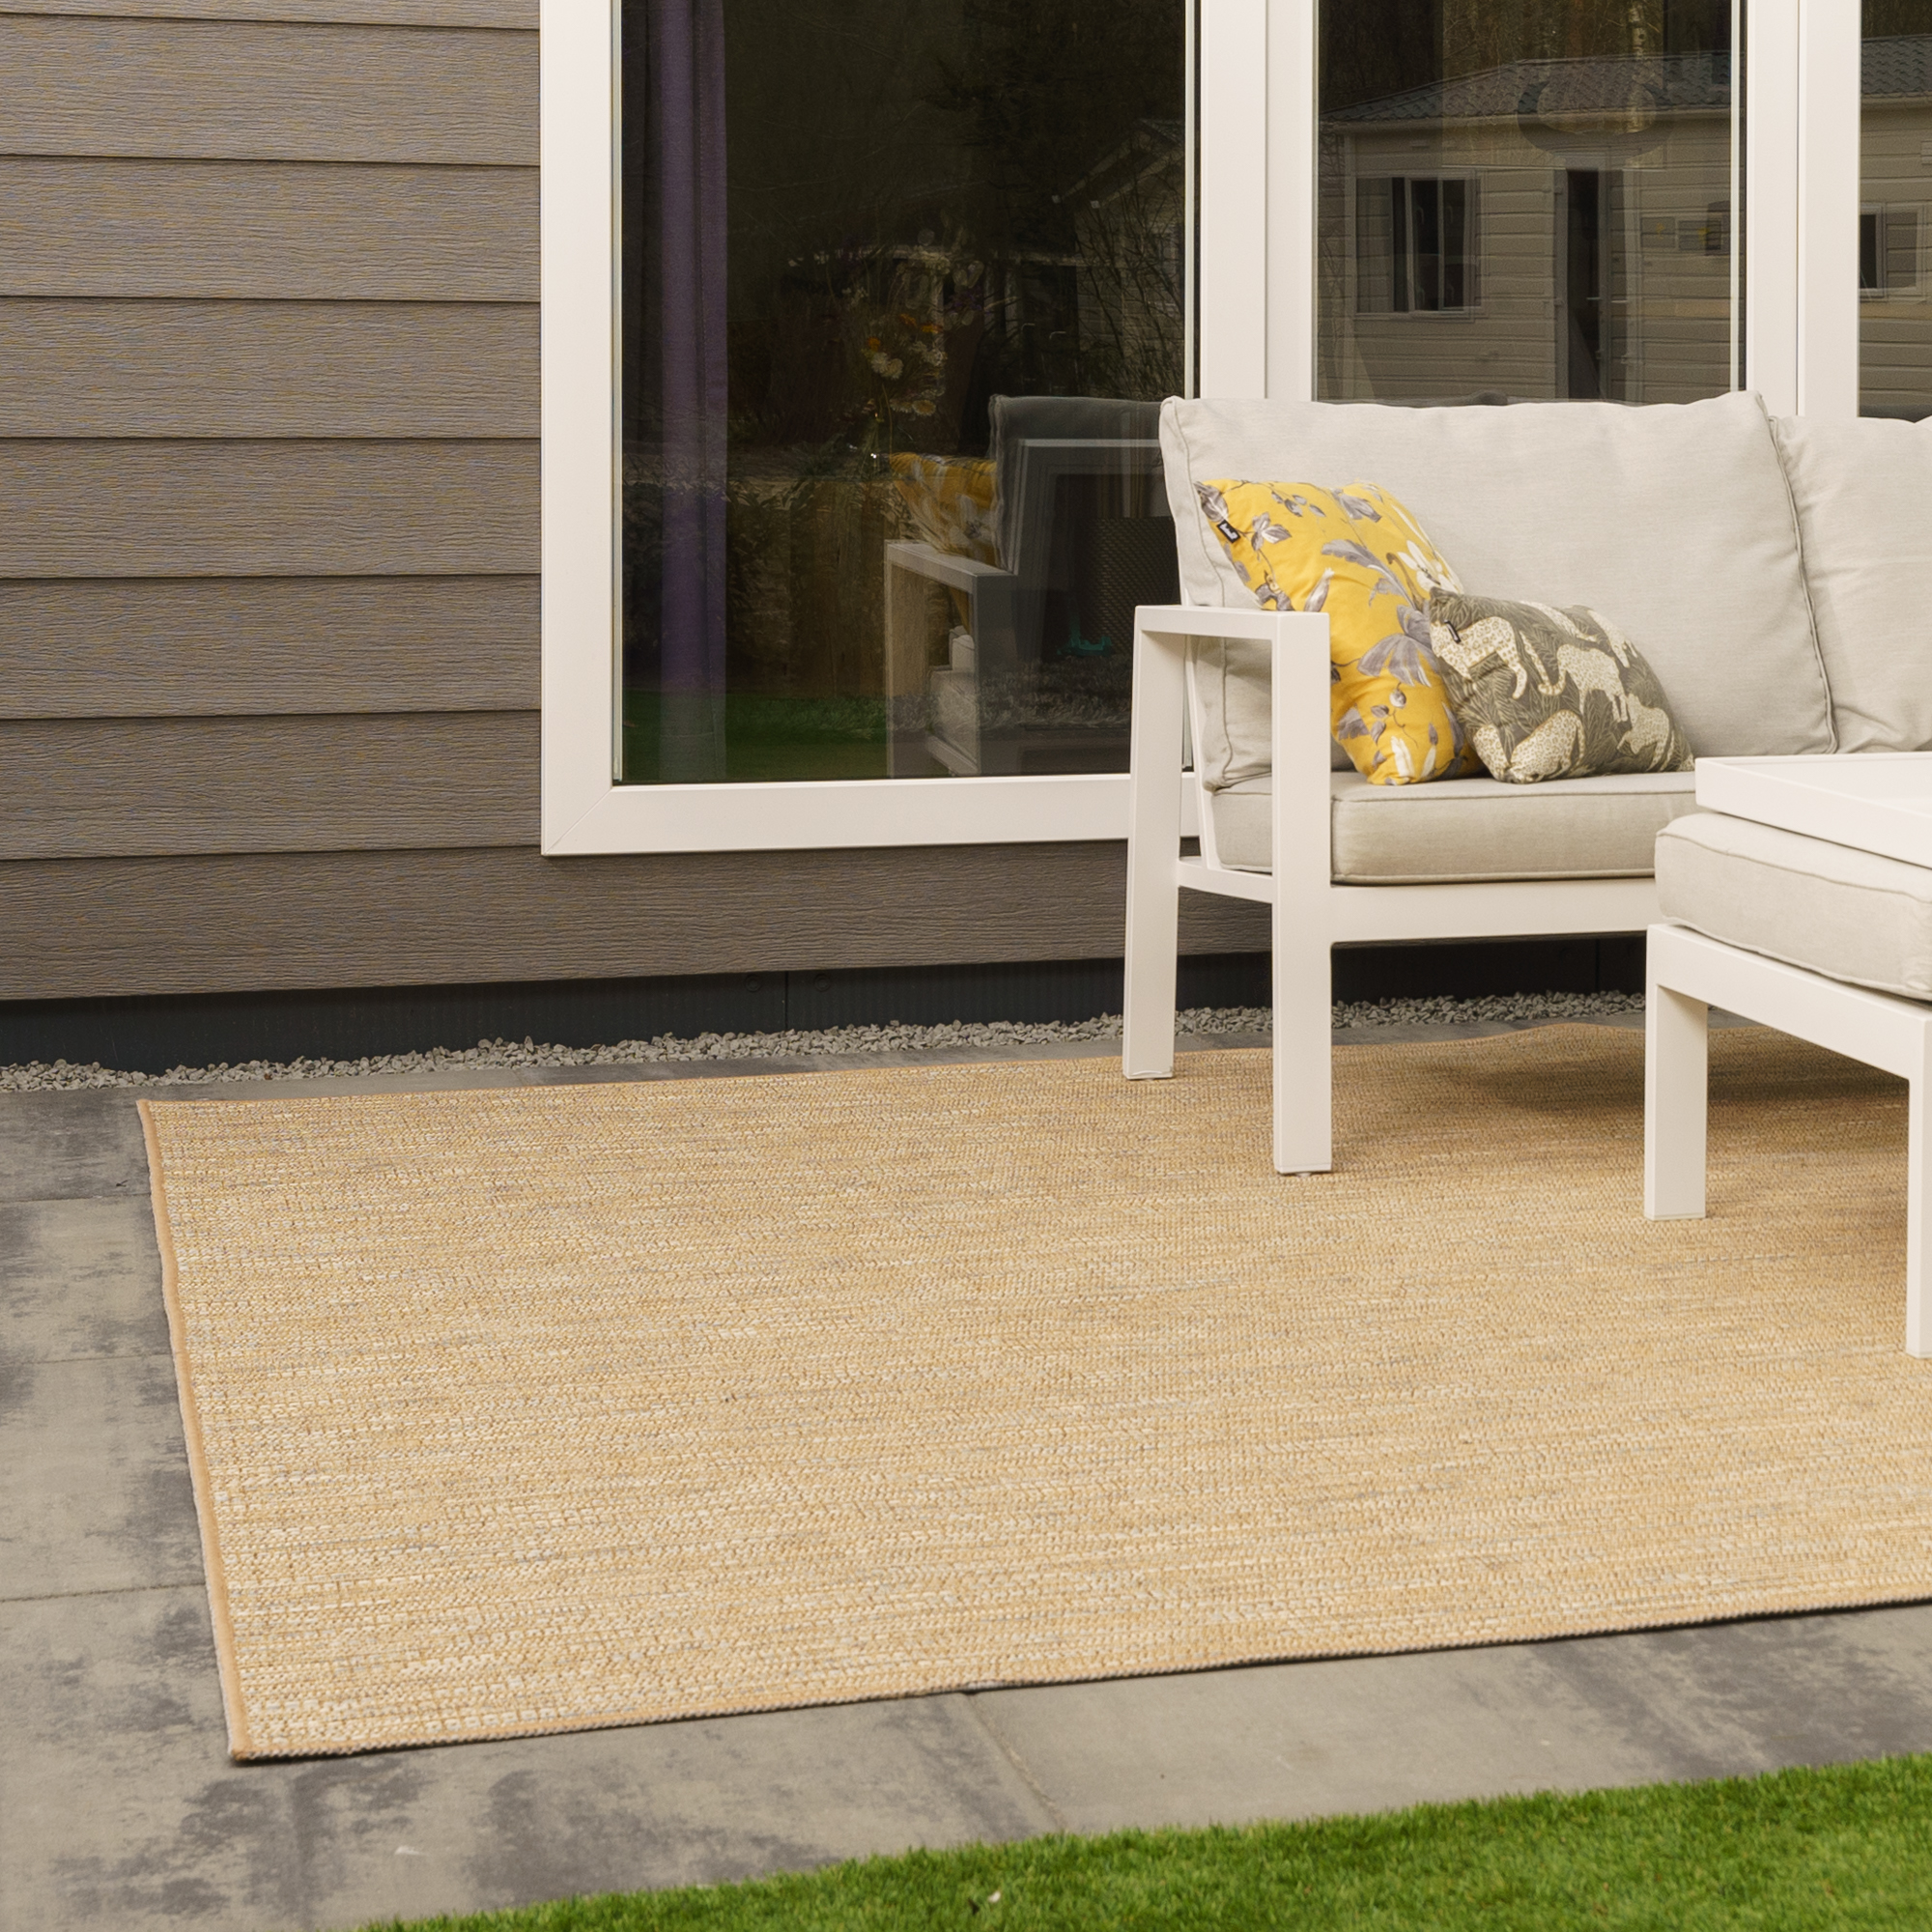 Vloerkleed Xilento Outdoor 4001-41